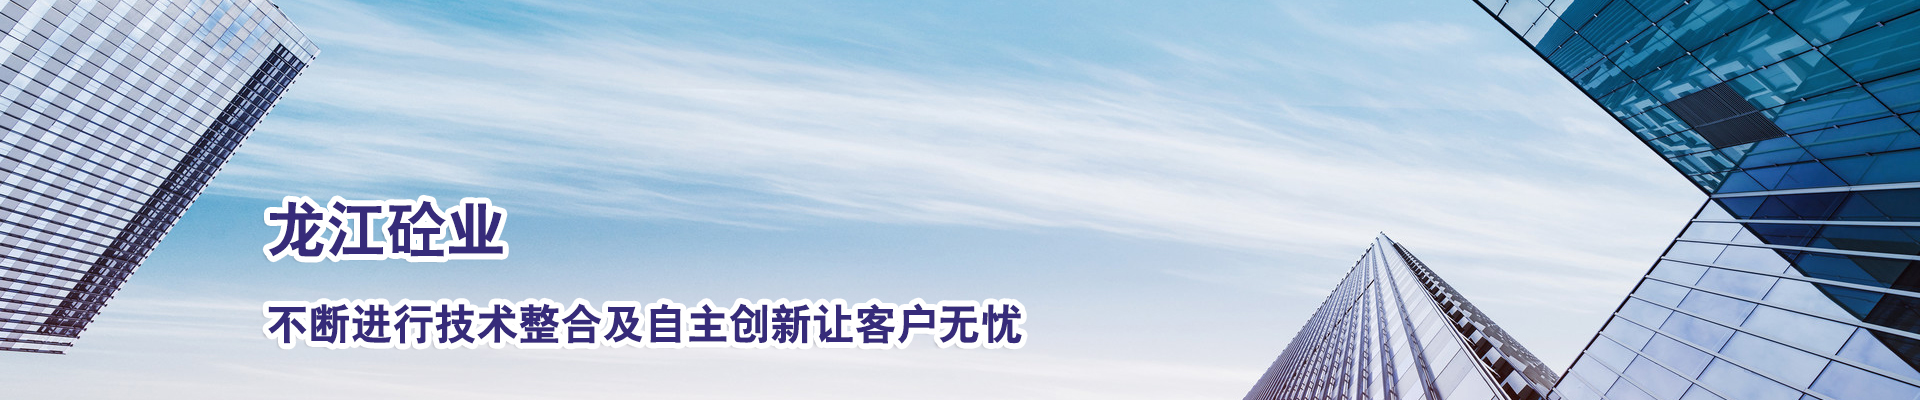 http://www.jsyclj.cn/data/images/slide/20191010170157_848.jpg